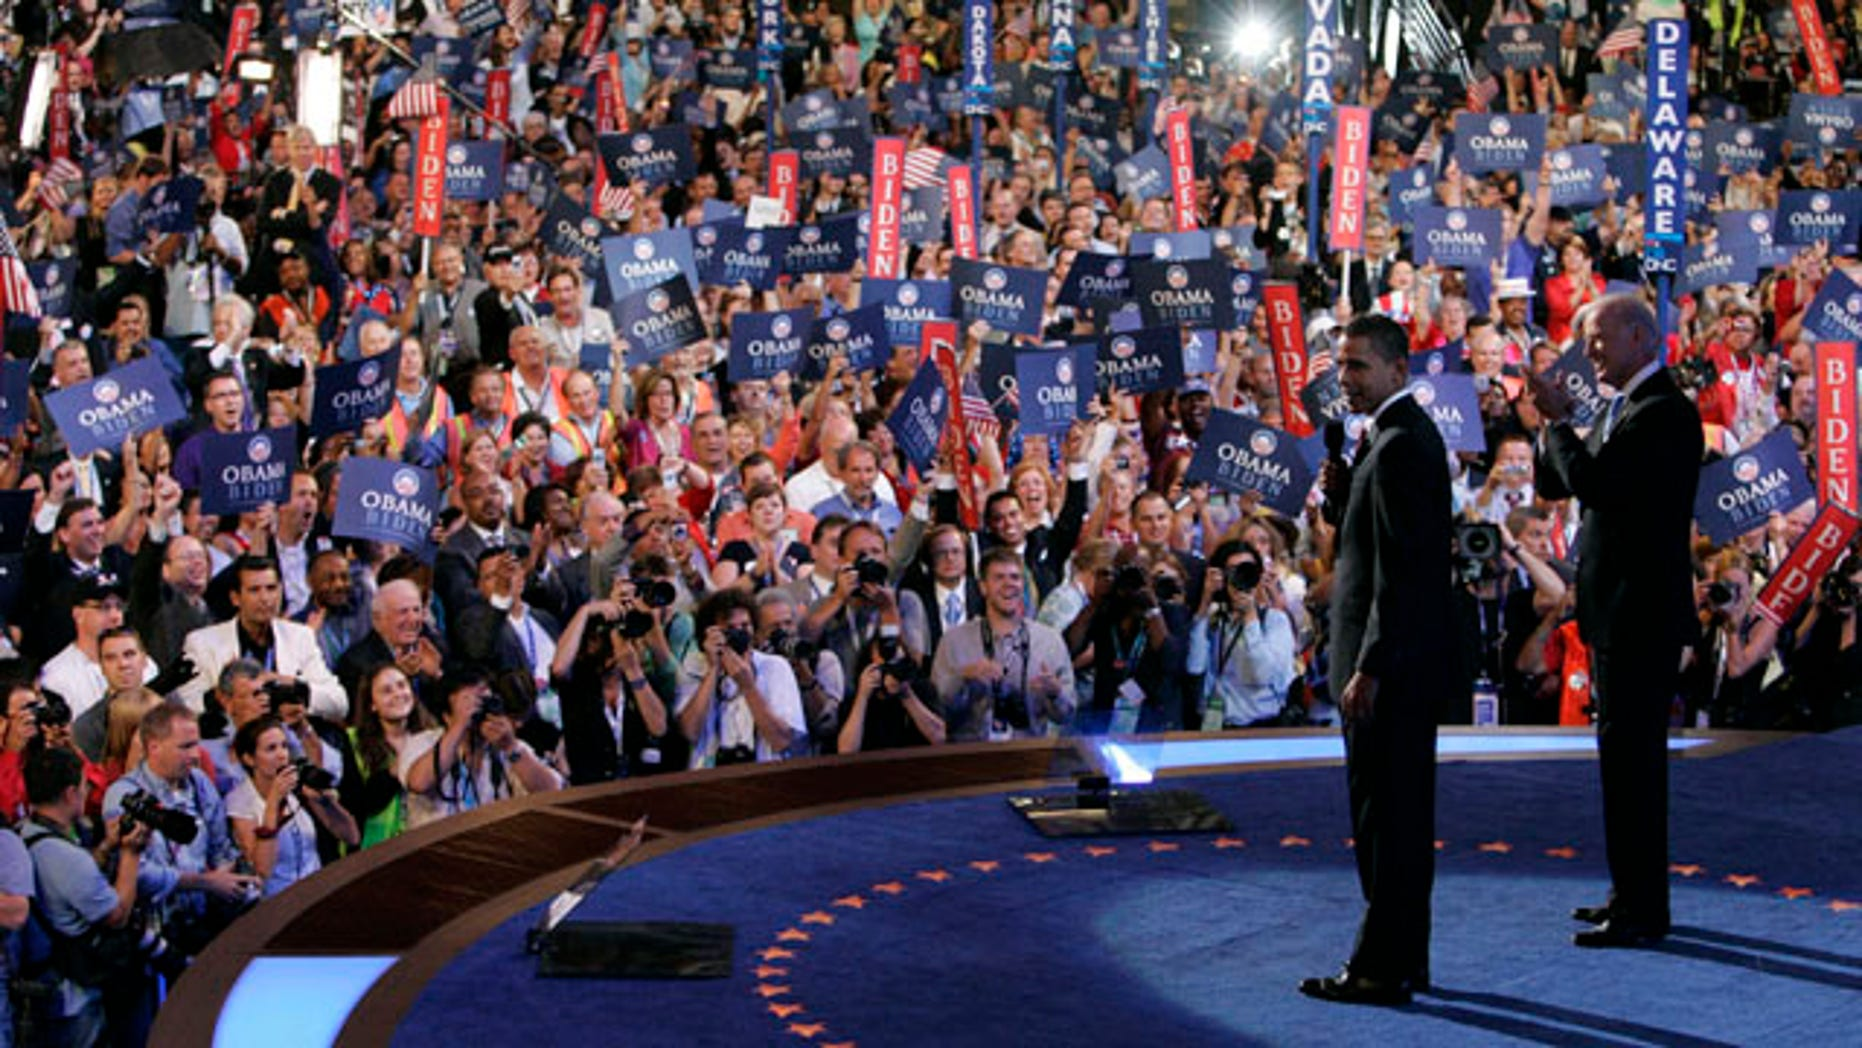 Aug. 27, 2008: Then-Democratic presidential nominee Barack Obama stands on stage with then-Sen. Joe Biden at the Democratic National Convention in Denver.